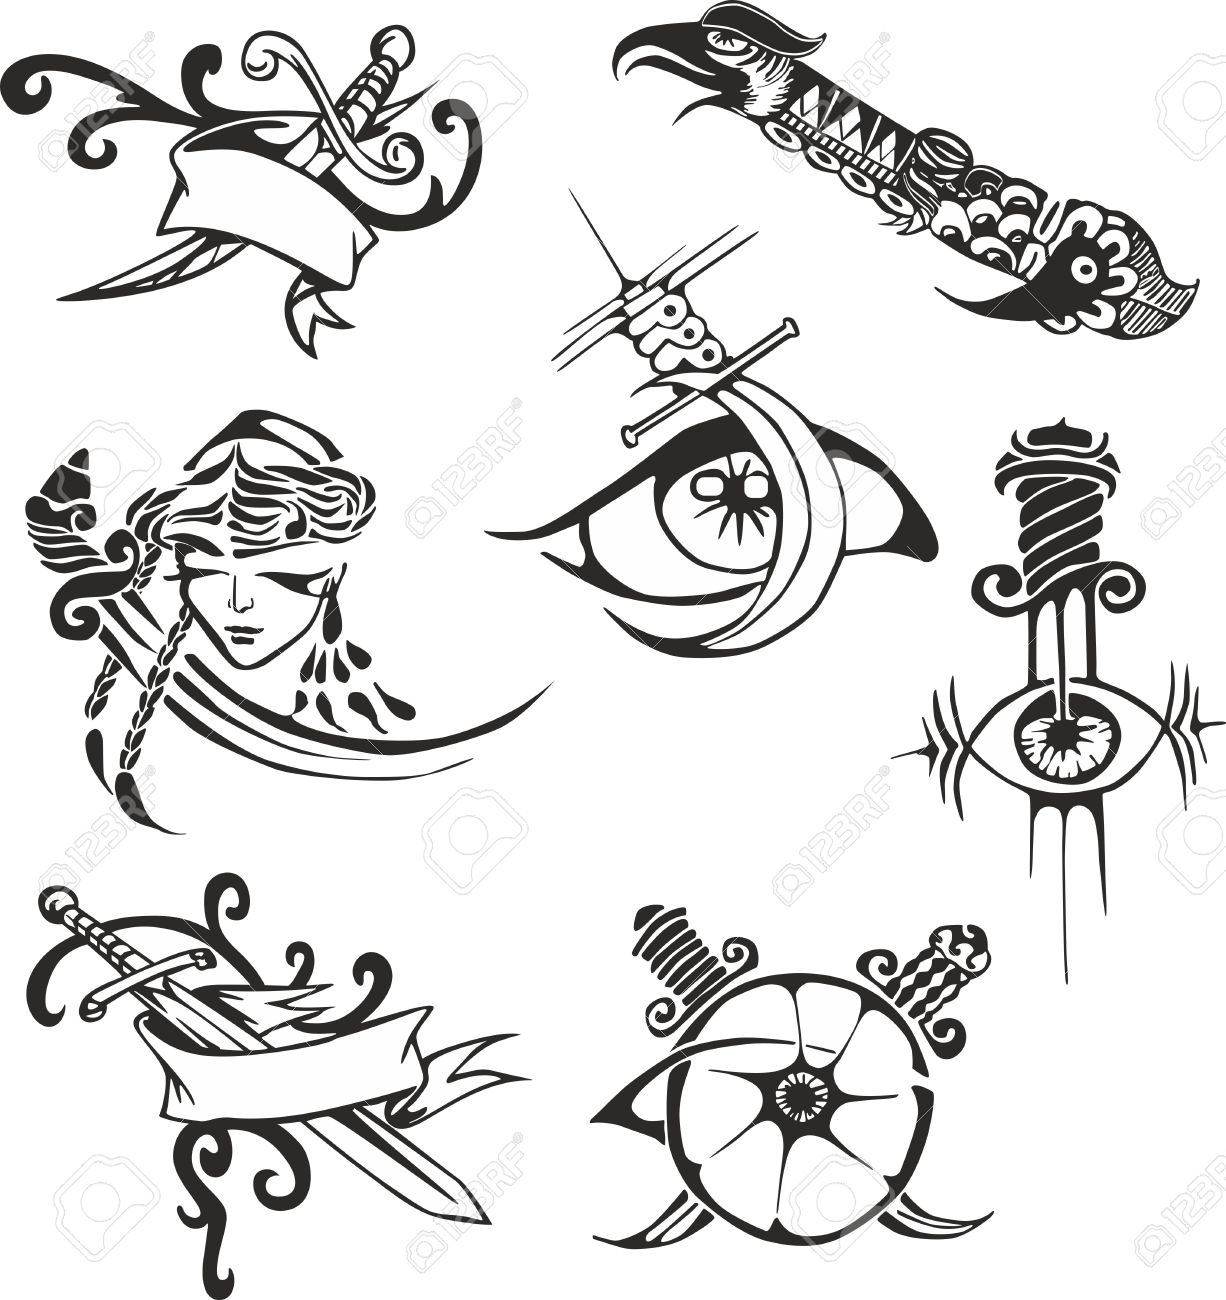 Set Of Black And White Tribal Tattoo Stencils With Blades Tattoo